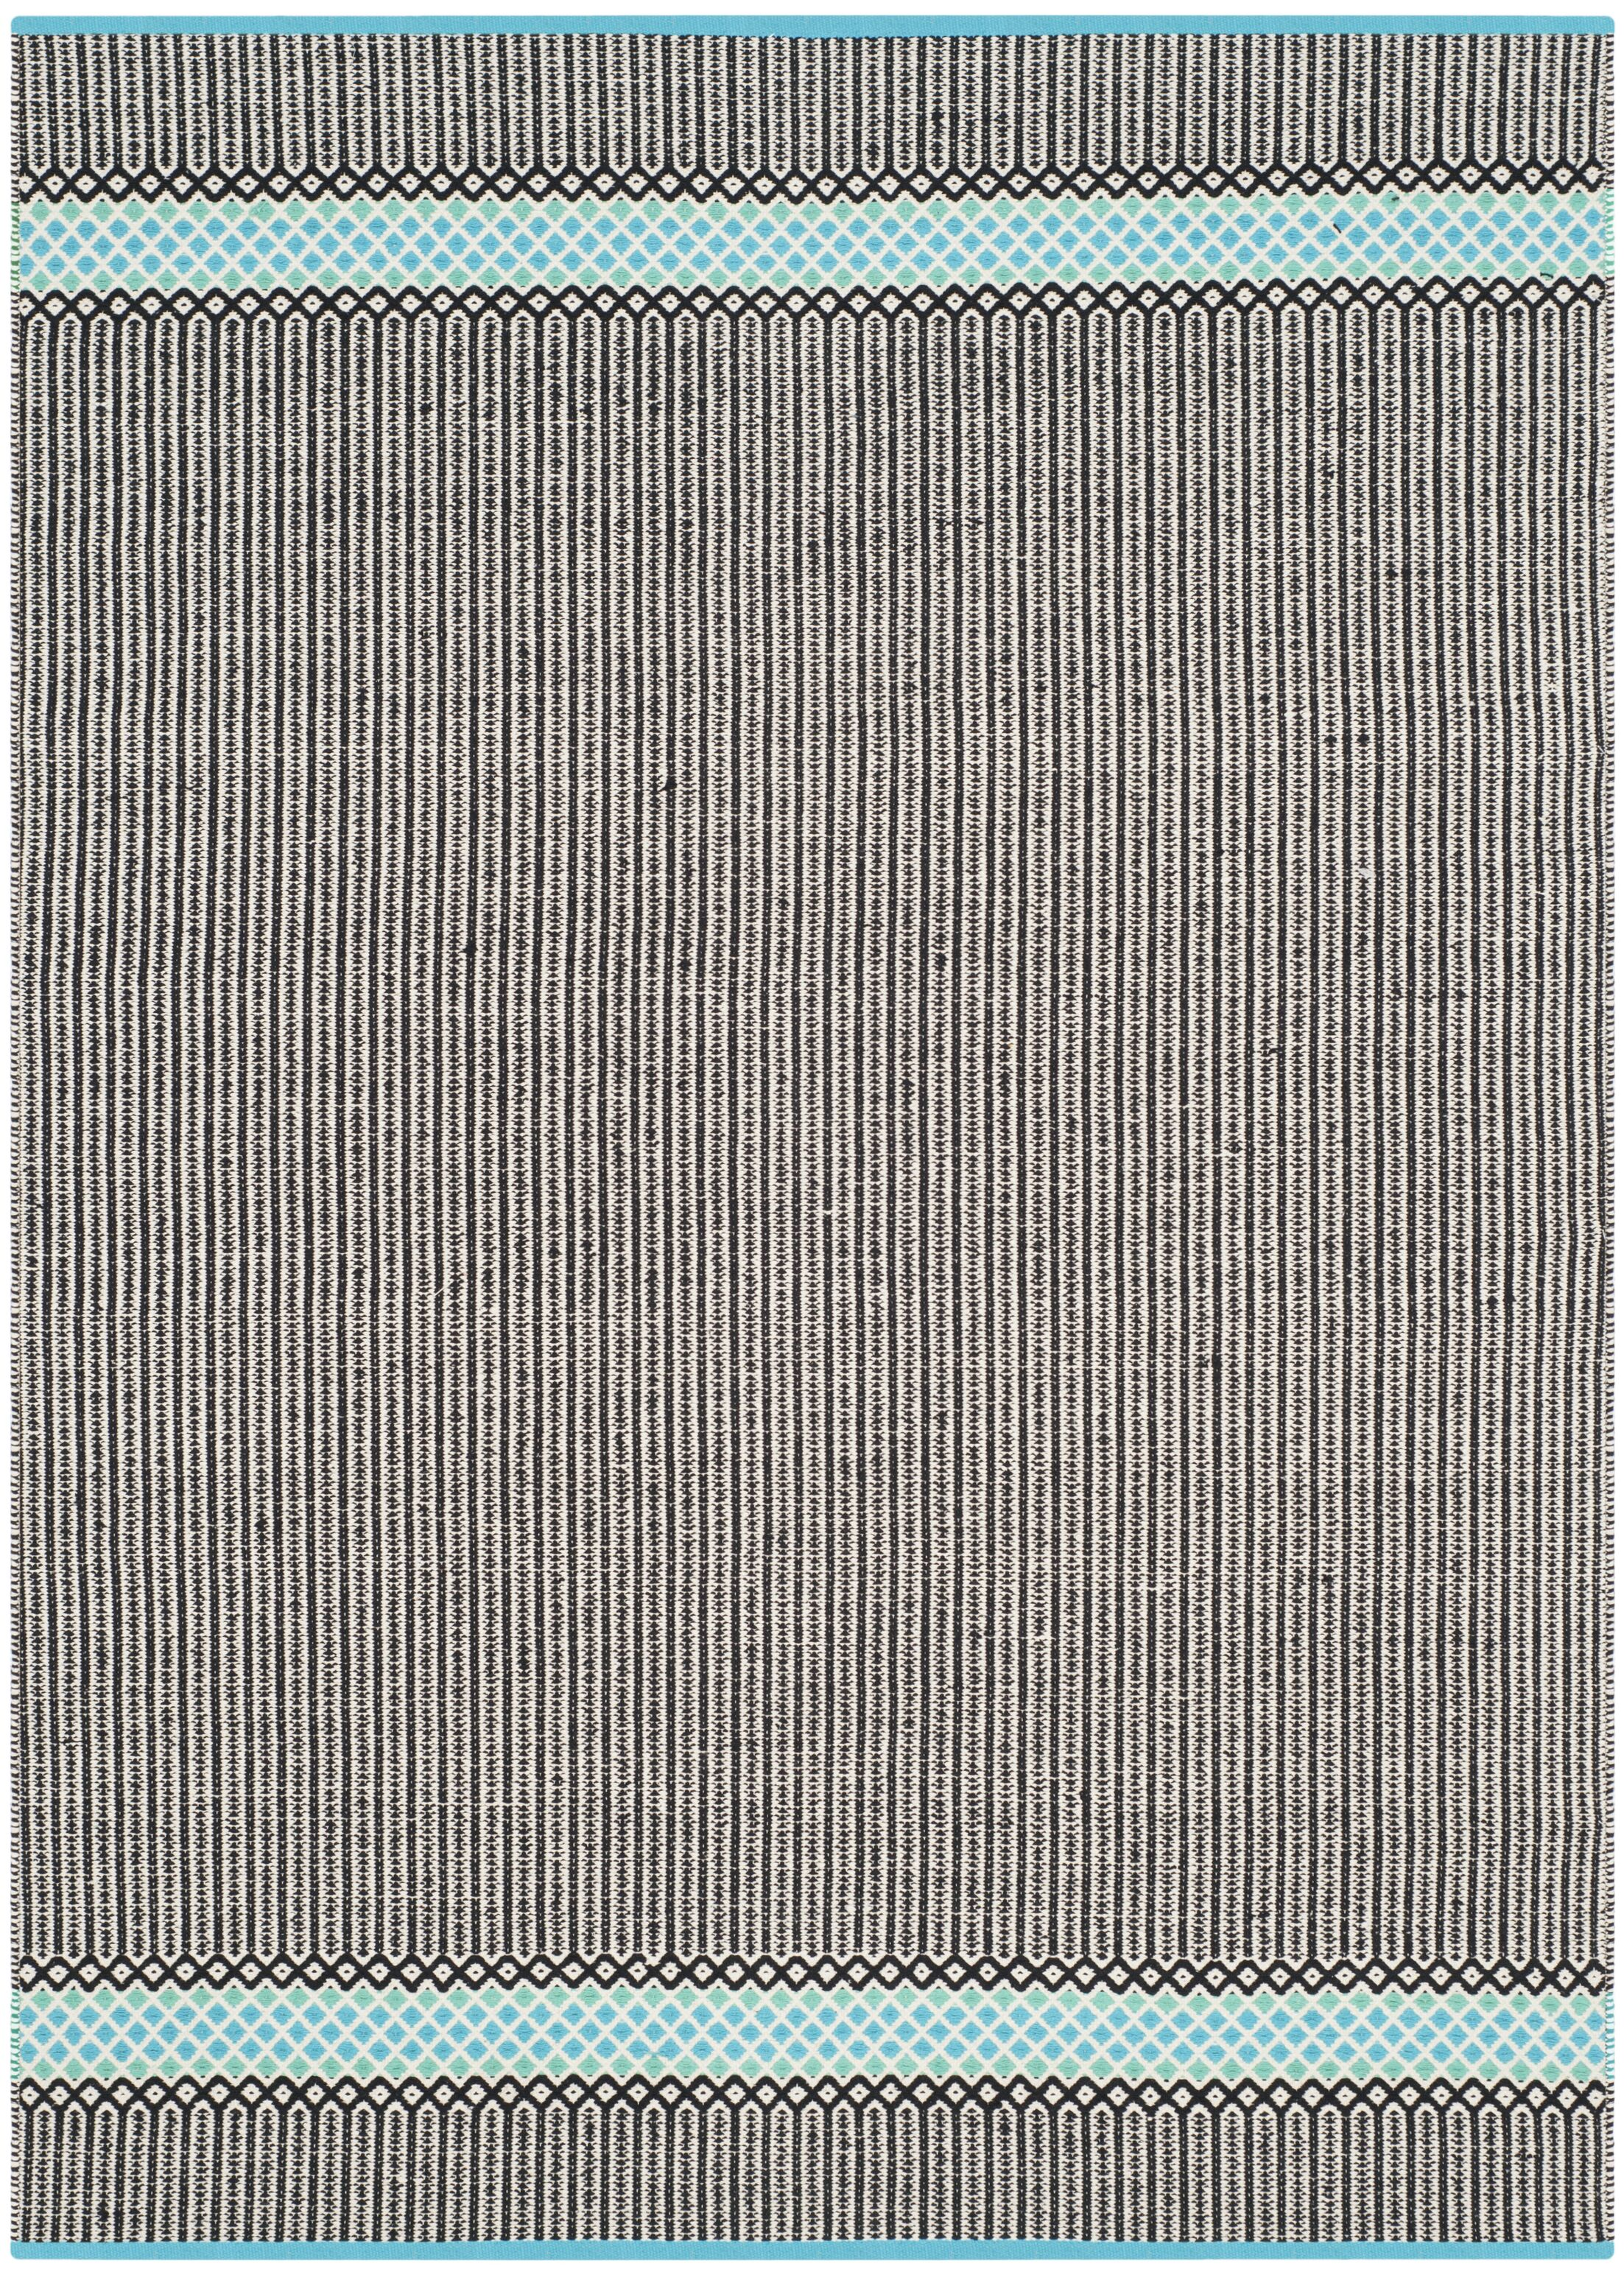 Shevchenko Place Hand-Woven Turquoise Area Rug Rug Size: Rectangle 5' x 8'